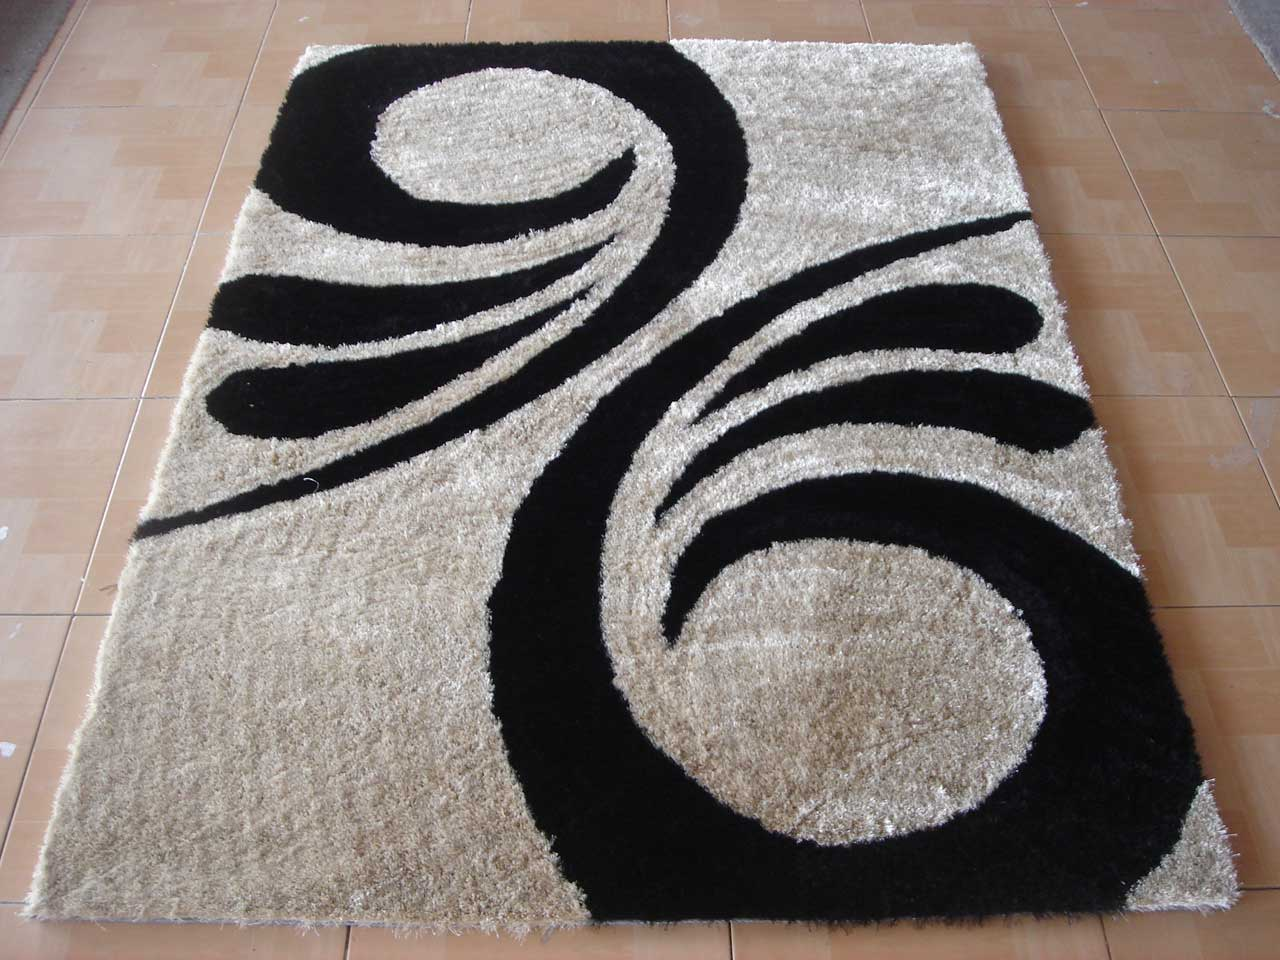 shag rugs in gainsboro with black motif for floor decor ideas